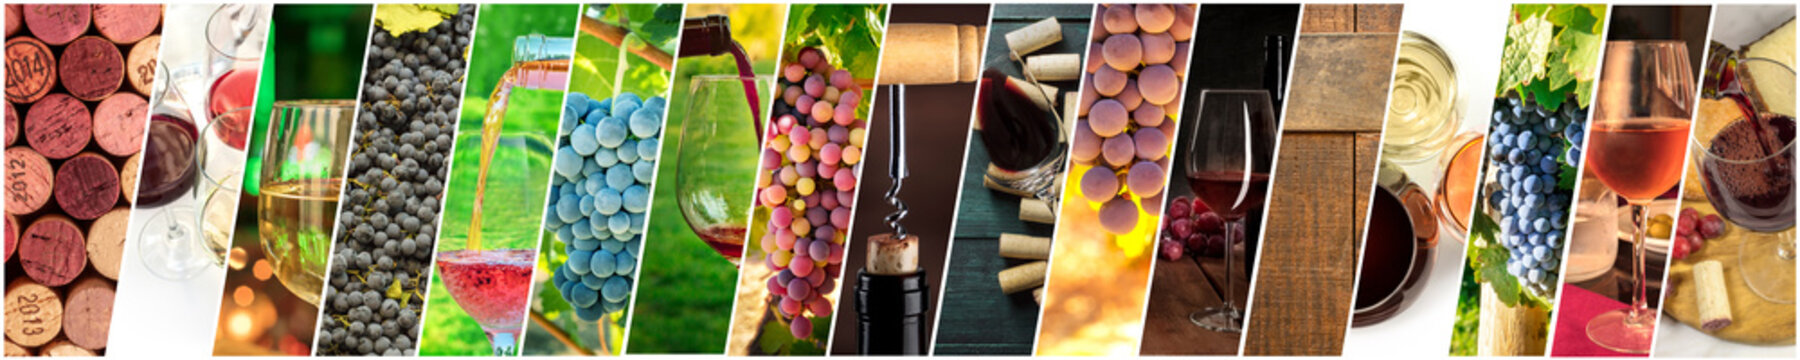 Wine Collage. A panorama of many photos of wine glasses, grapes at vineyards, corks, tastings, barrels, a design for a banner or flyer